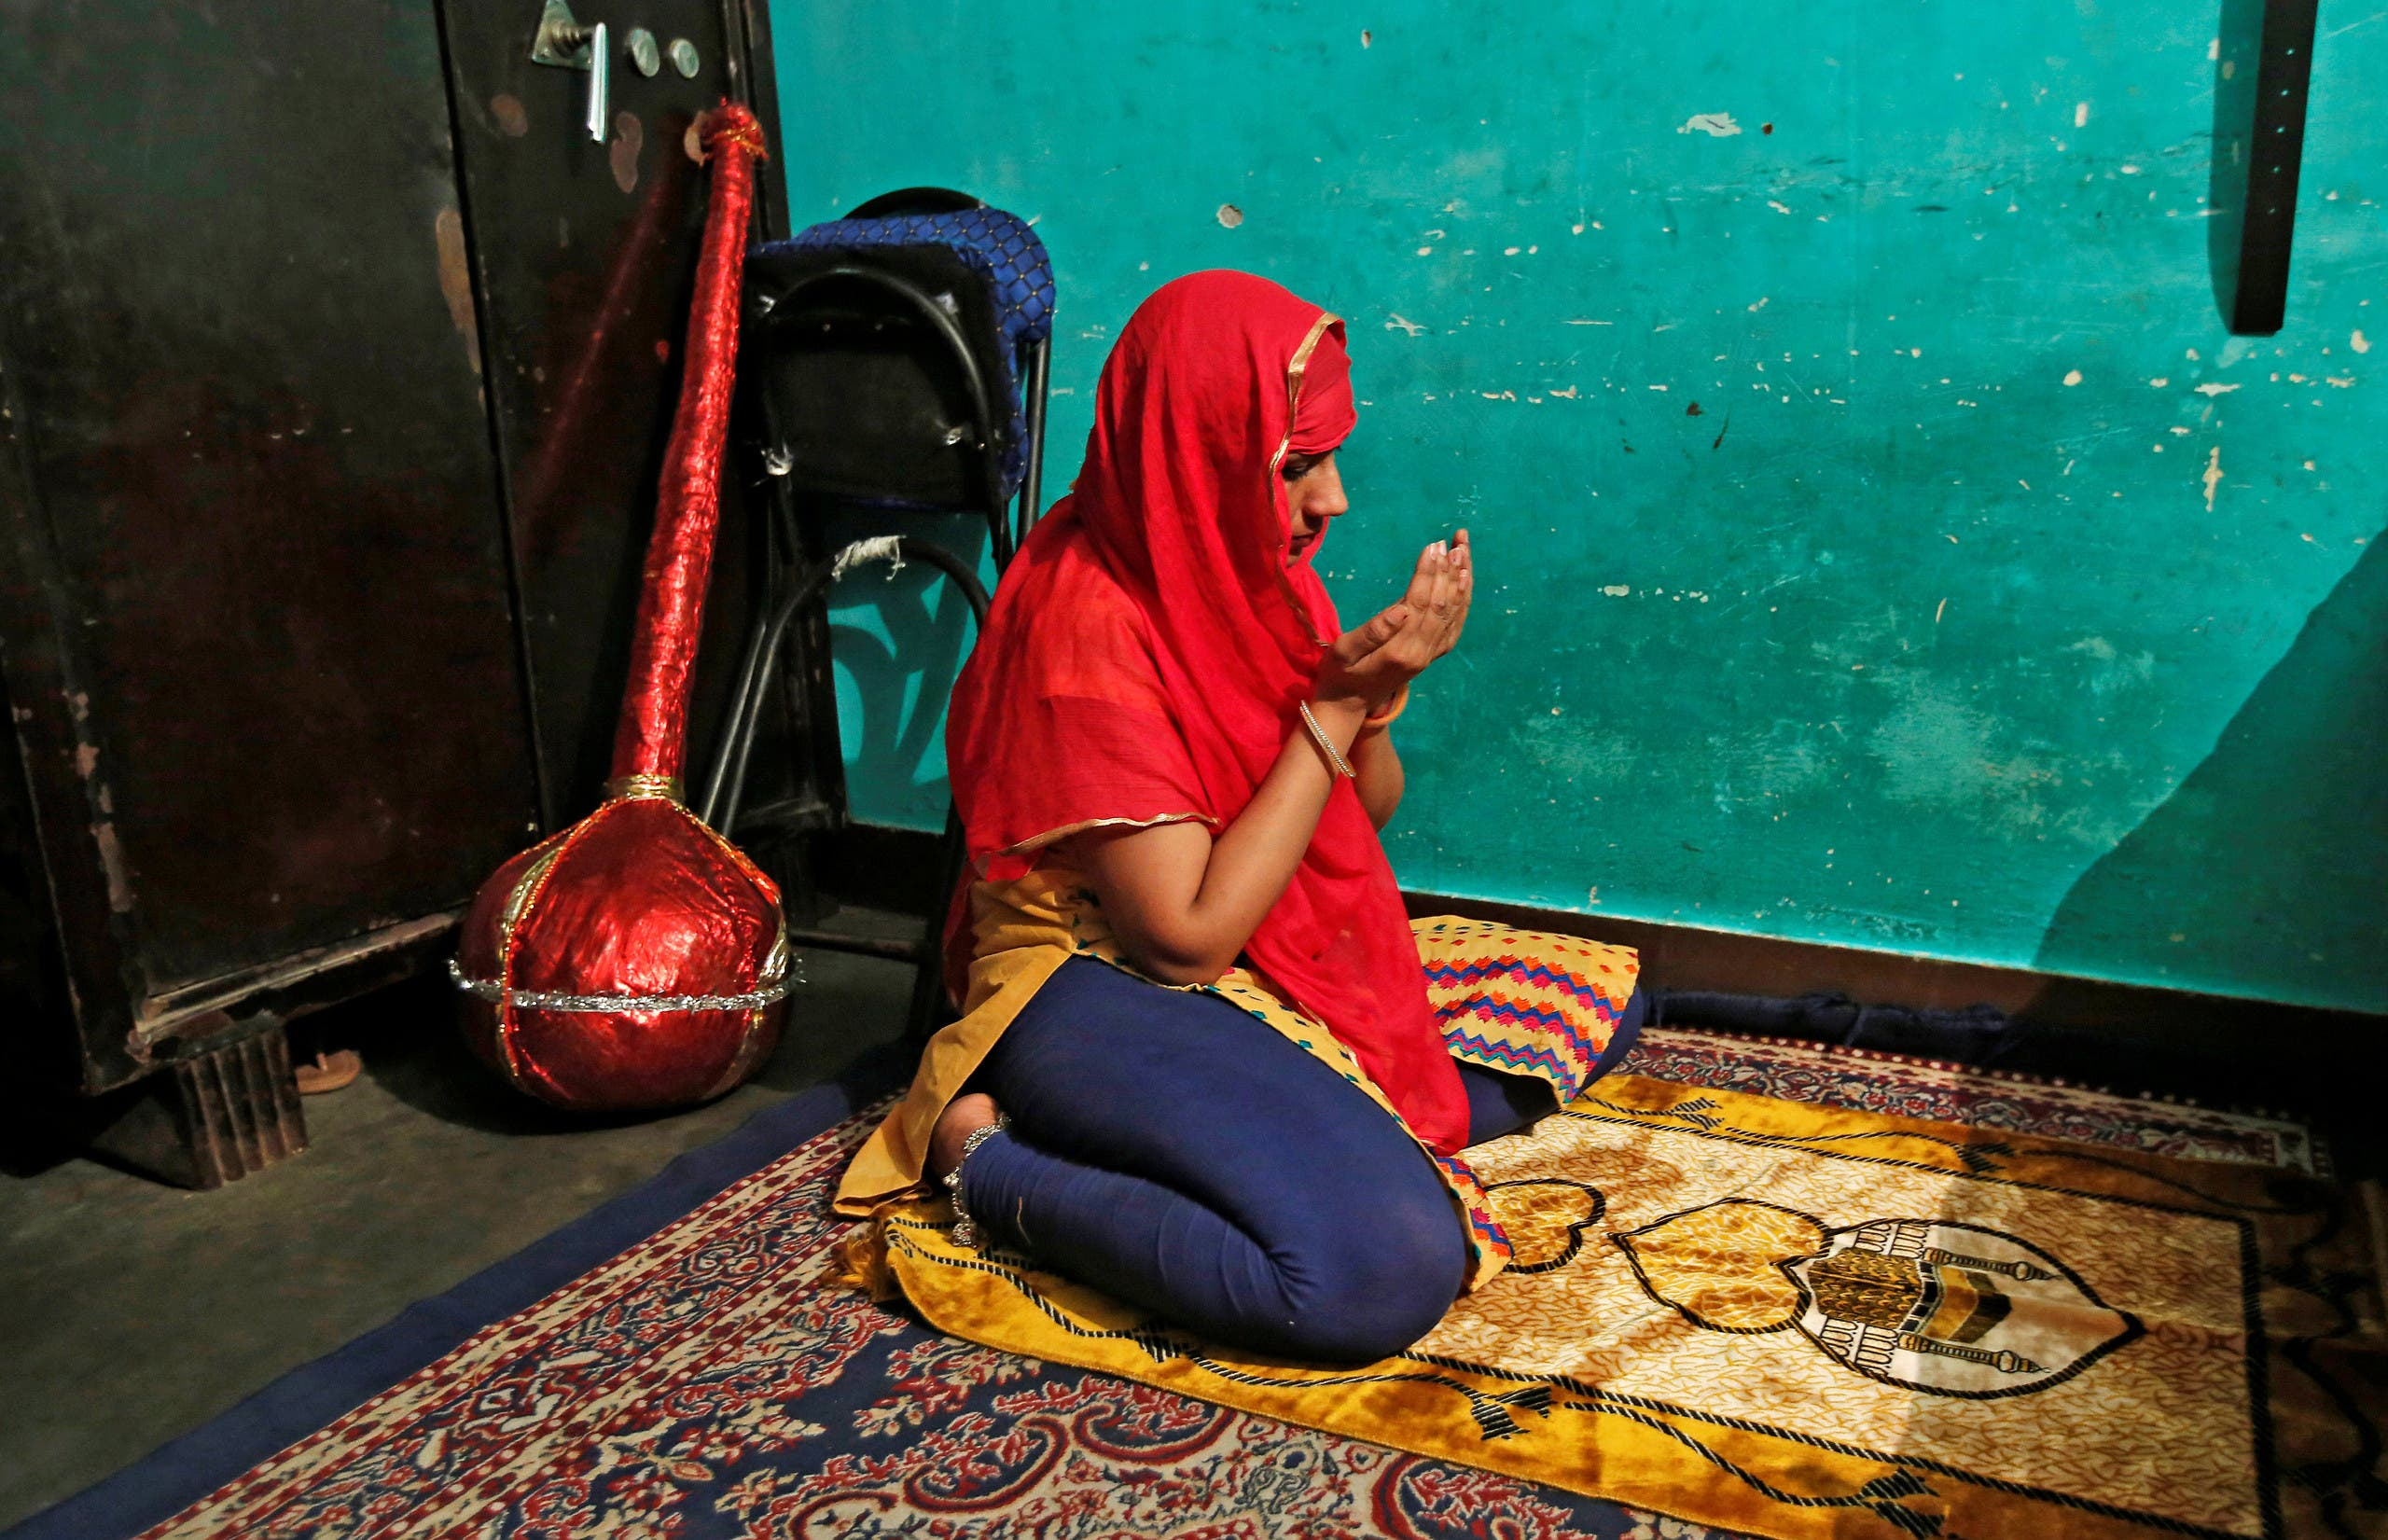 Bouncer Mehrunnisha Shokat Ali offers her evening prayer during holy month of Ramadan at her house in New Delhi, India, May 31, 2017. reuters